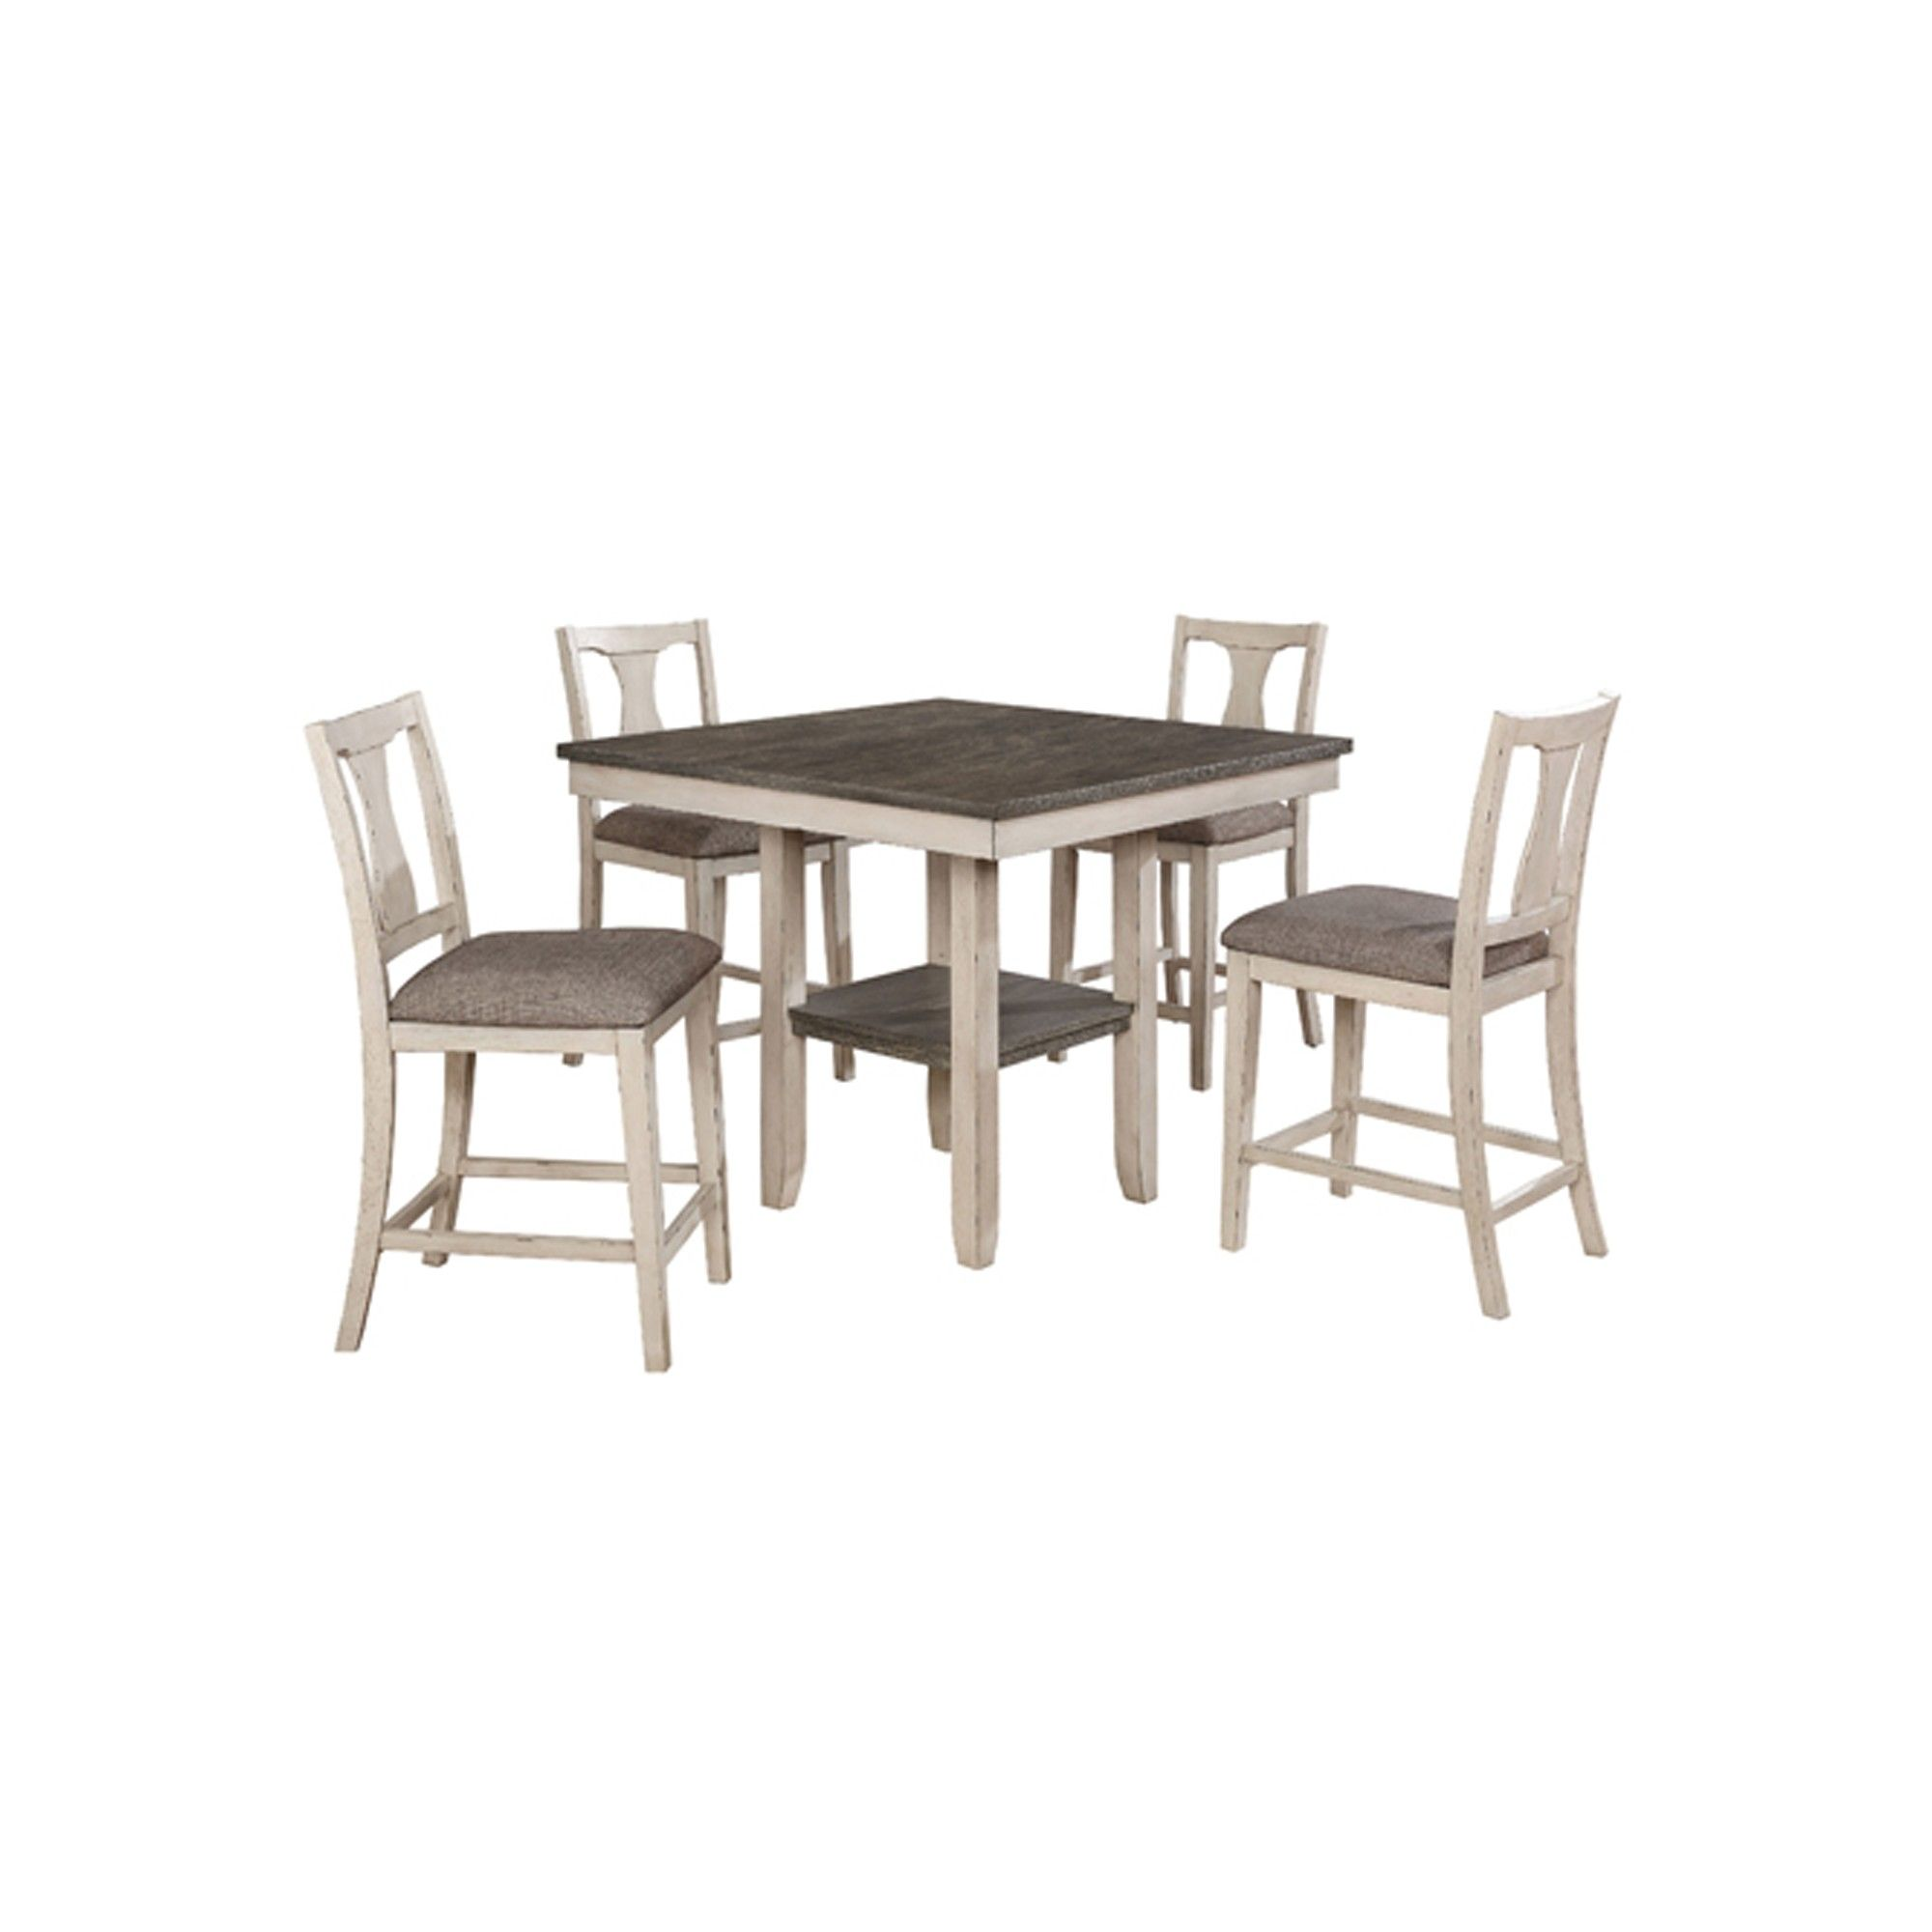 ac67db86bfe8 5pk Terry Wood Dining Table Set Antique White/Gray - Sun & Pine ...